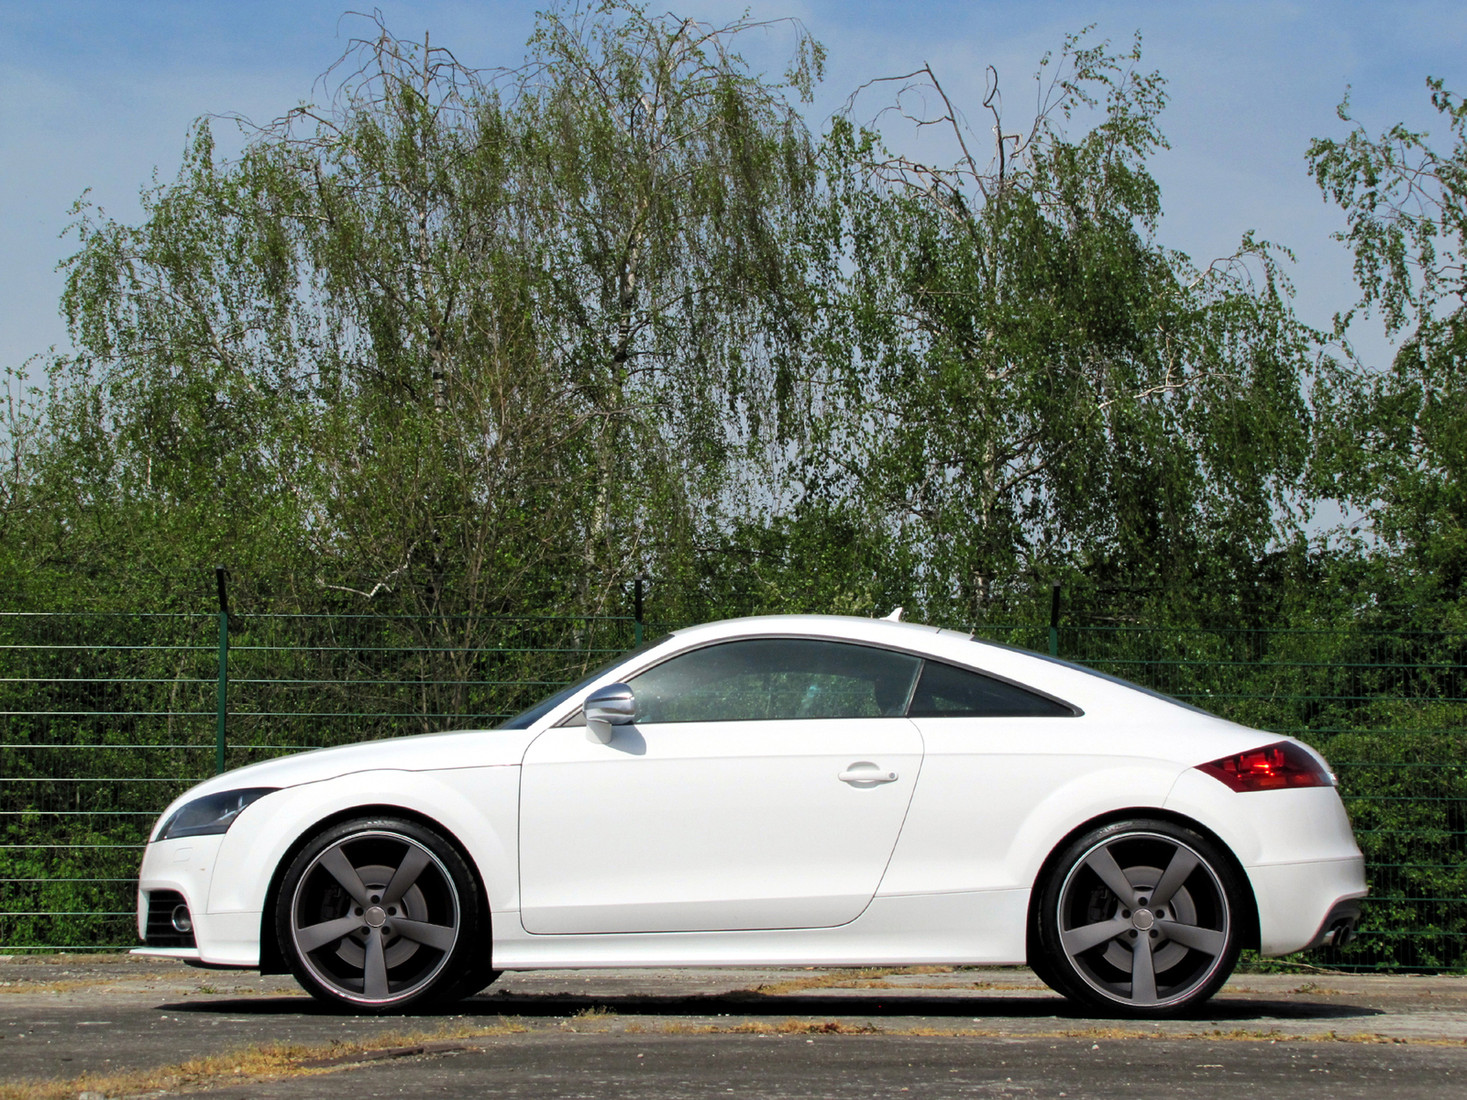 Audi Tt Coupe Typ 8j Galerie By Gt Automotive Gmbh Amp Co Kg